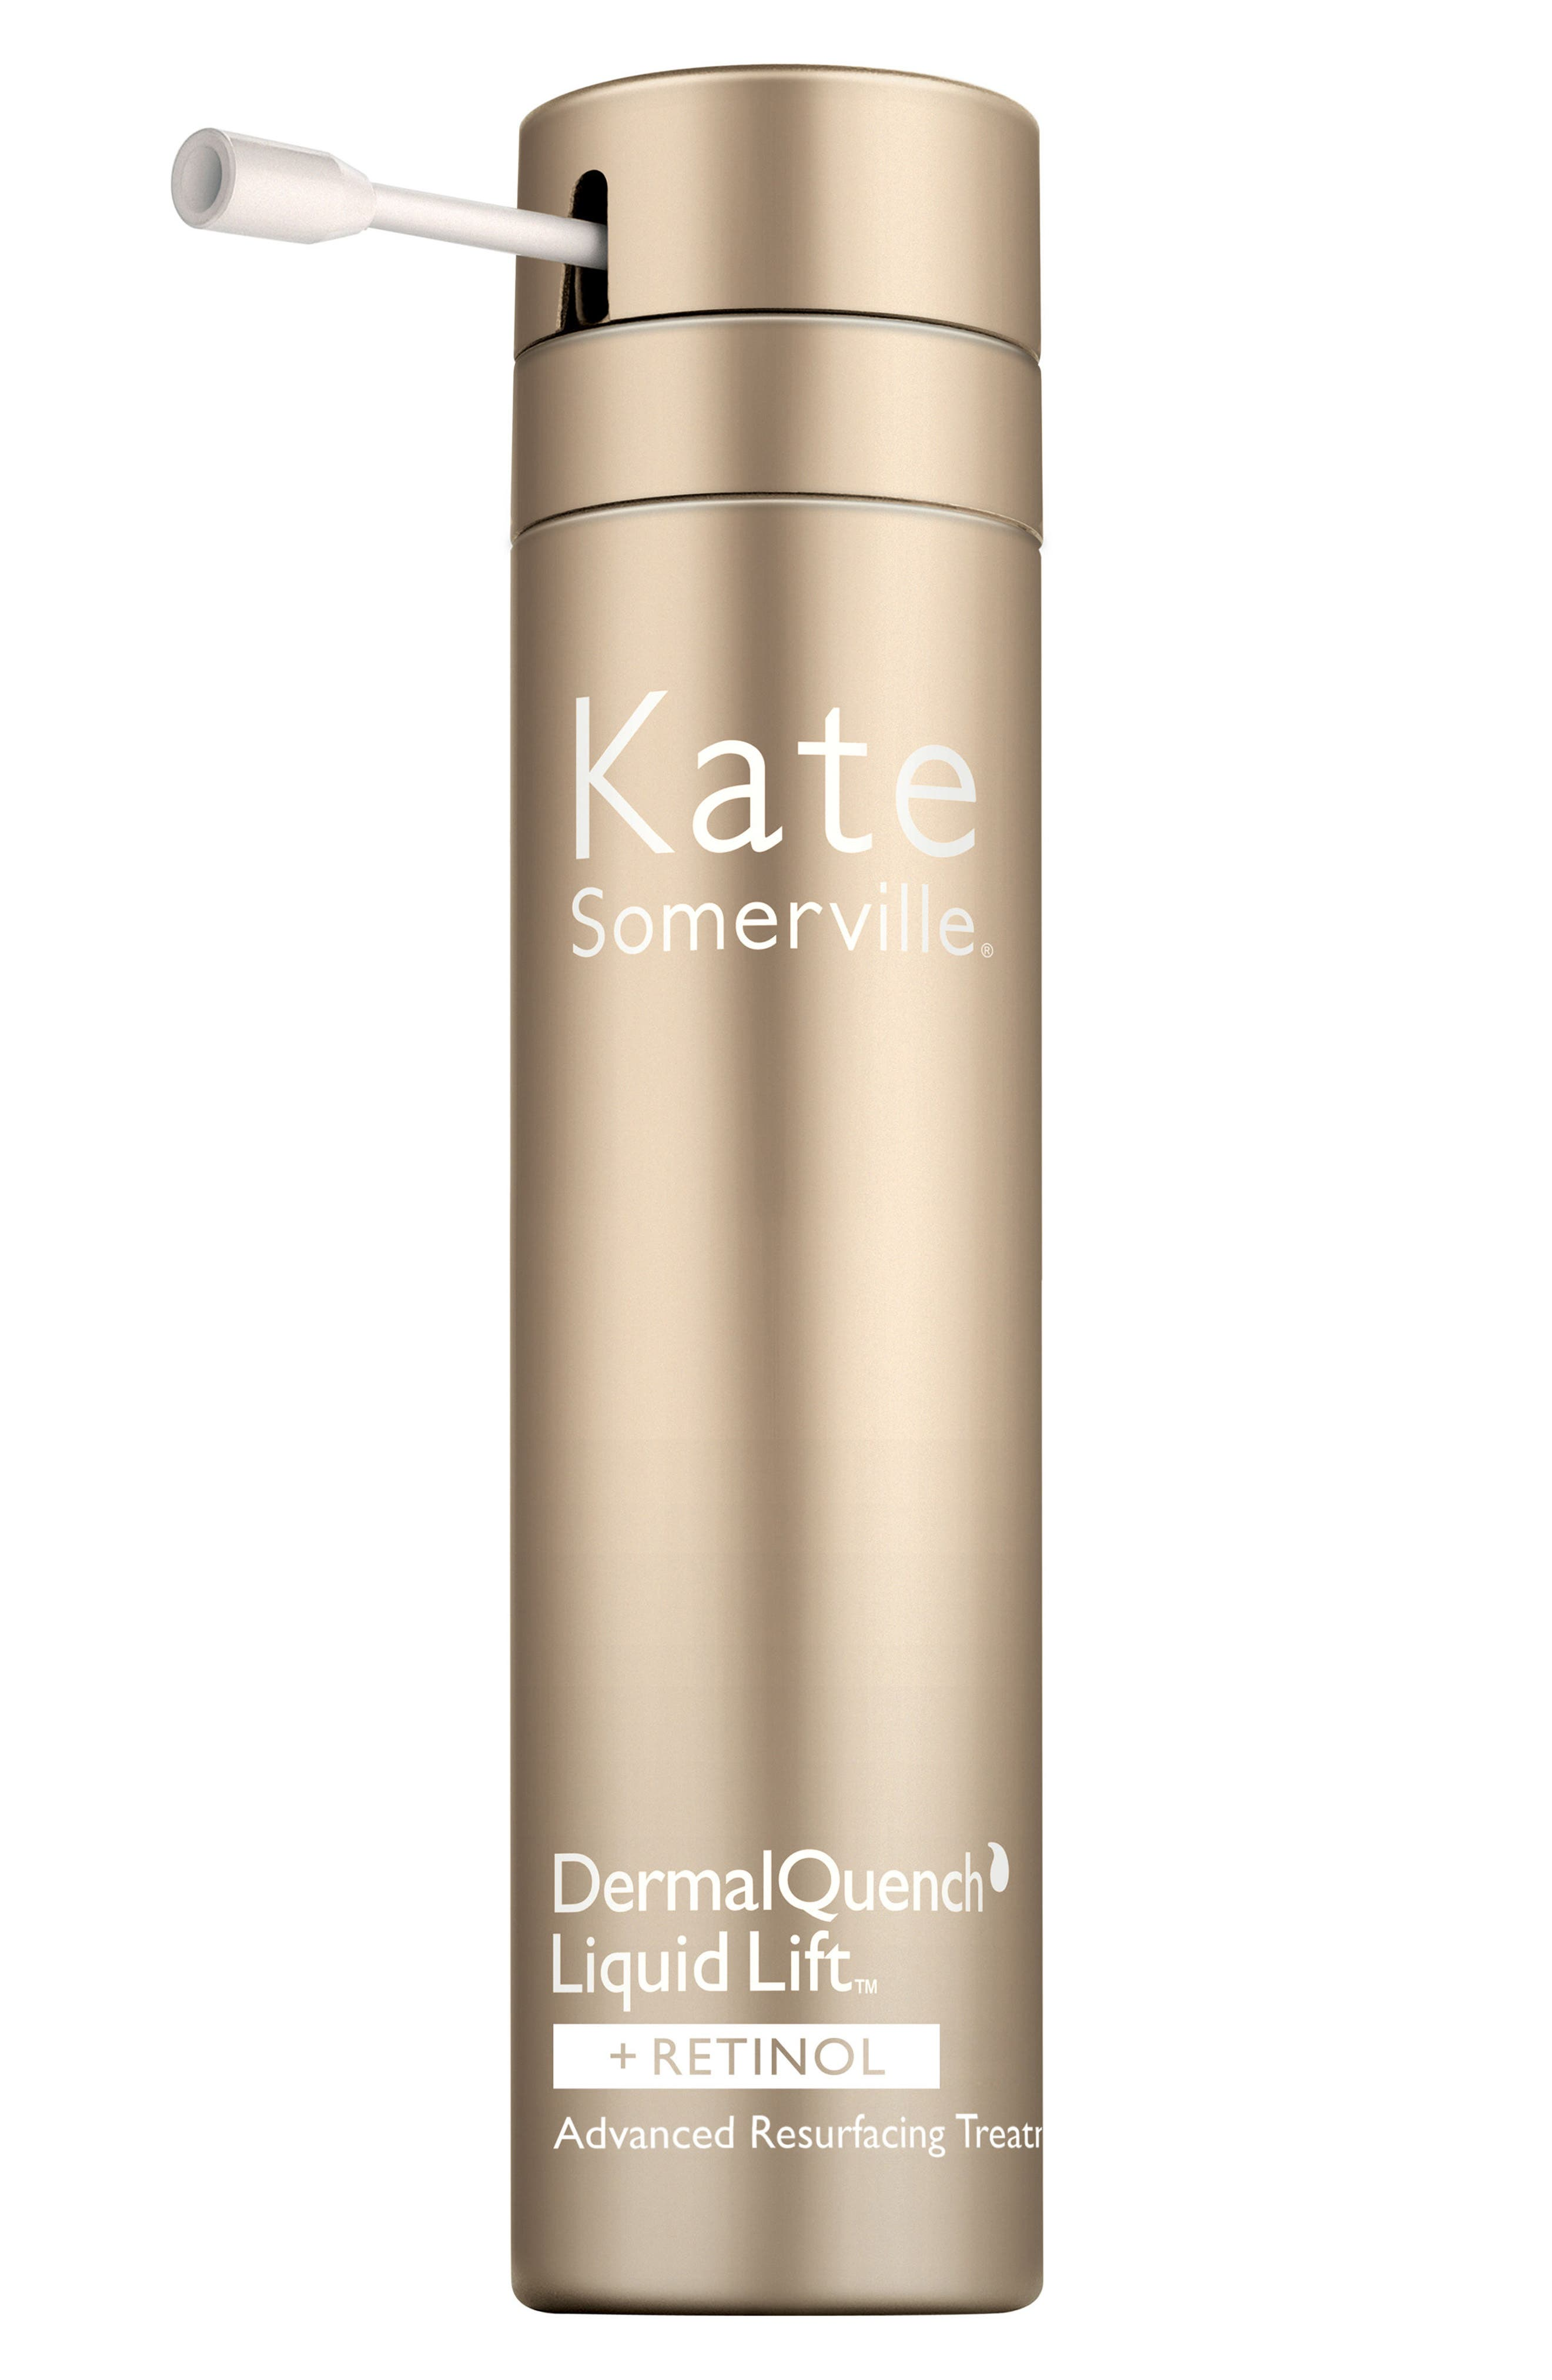 Alternate Image 1 Selected - Kate Somerville® DermalQuench Liquid Lift™ + Retinol Advanced Resurfacing Treatment